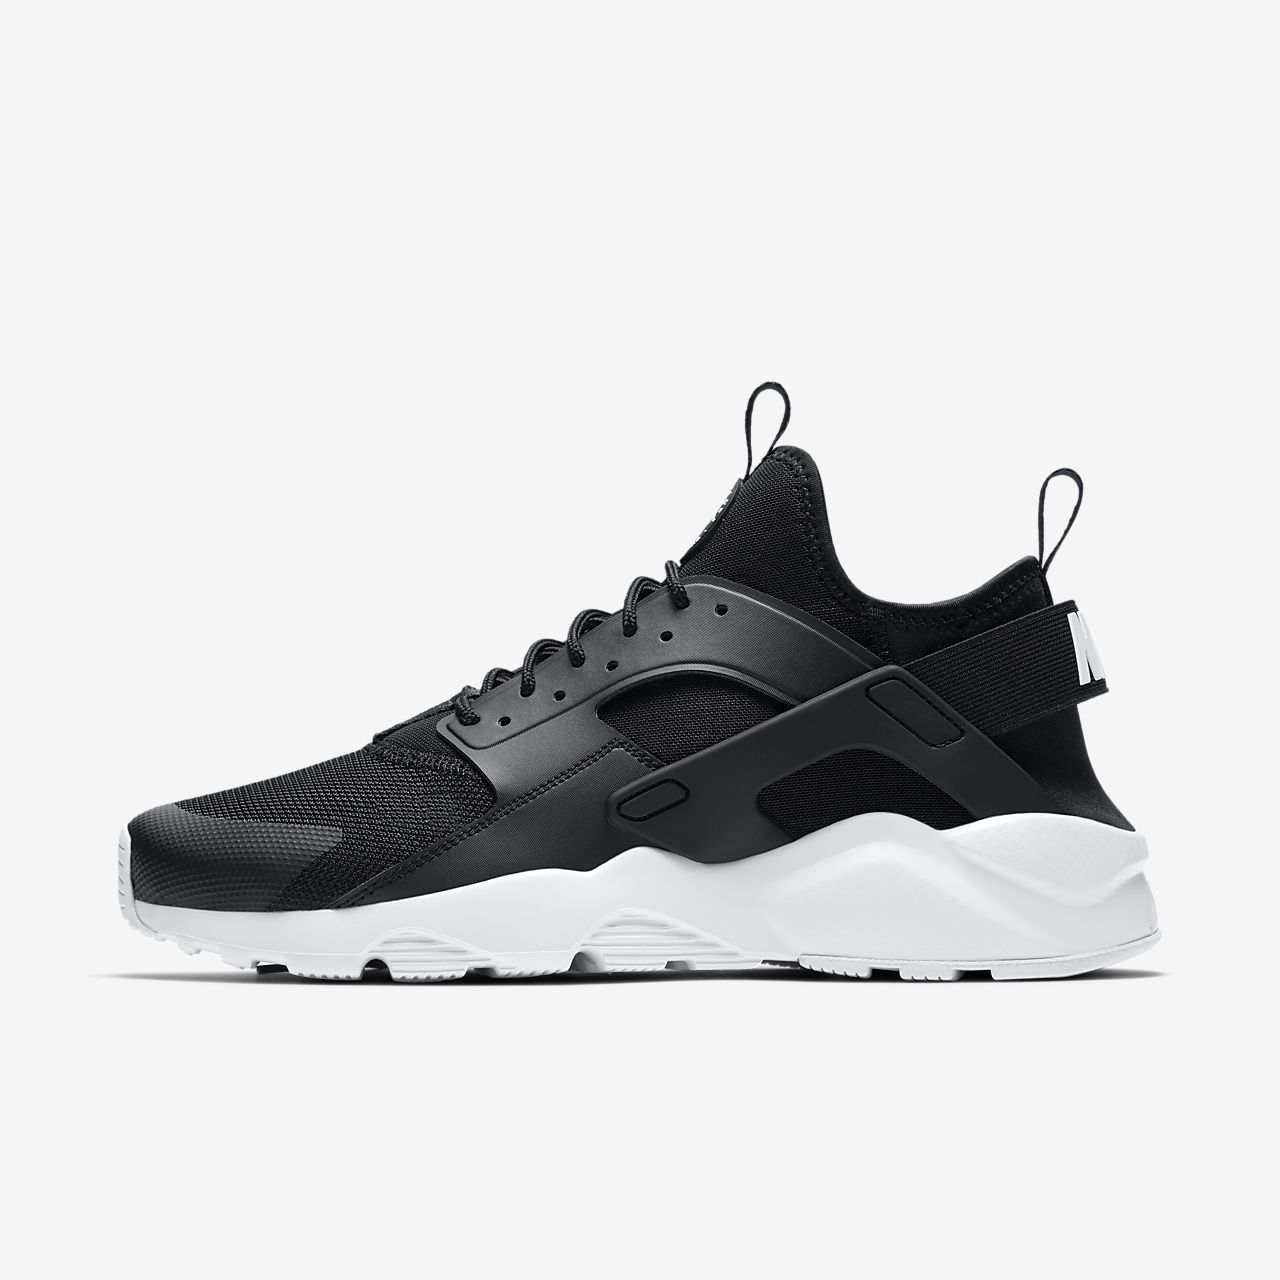 f187c1a4bbd Nike Air Huarache Ultra Men s Shoe. Nike.com GB